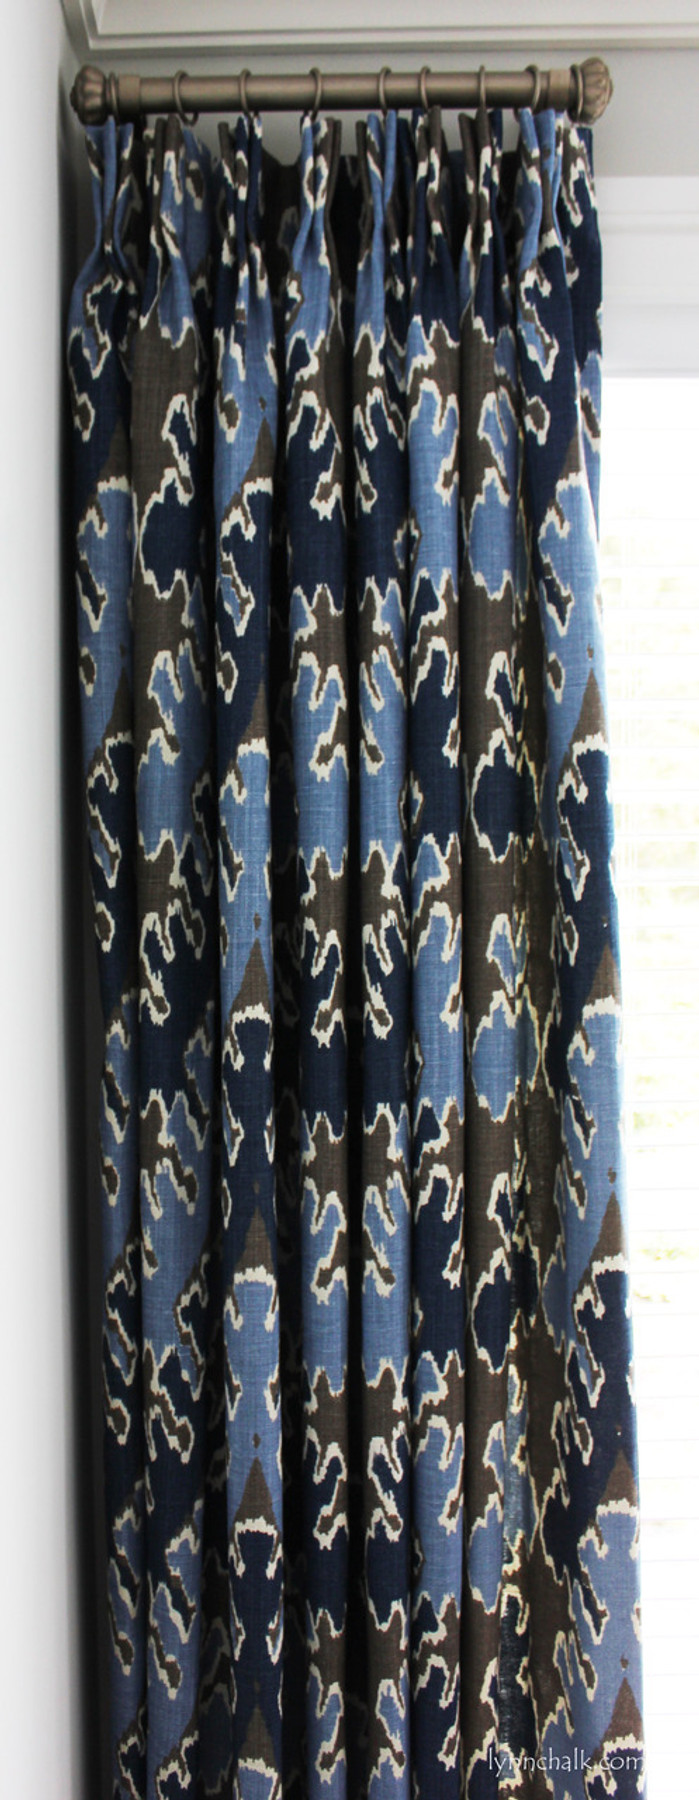 Drapes in Bengal Bazaar in Graphite/Indigo with Traditional Pinch Pleats